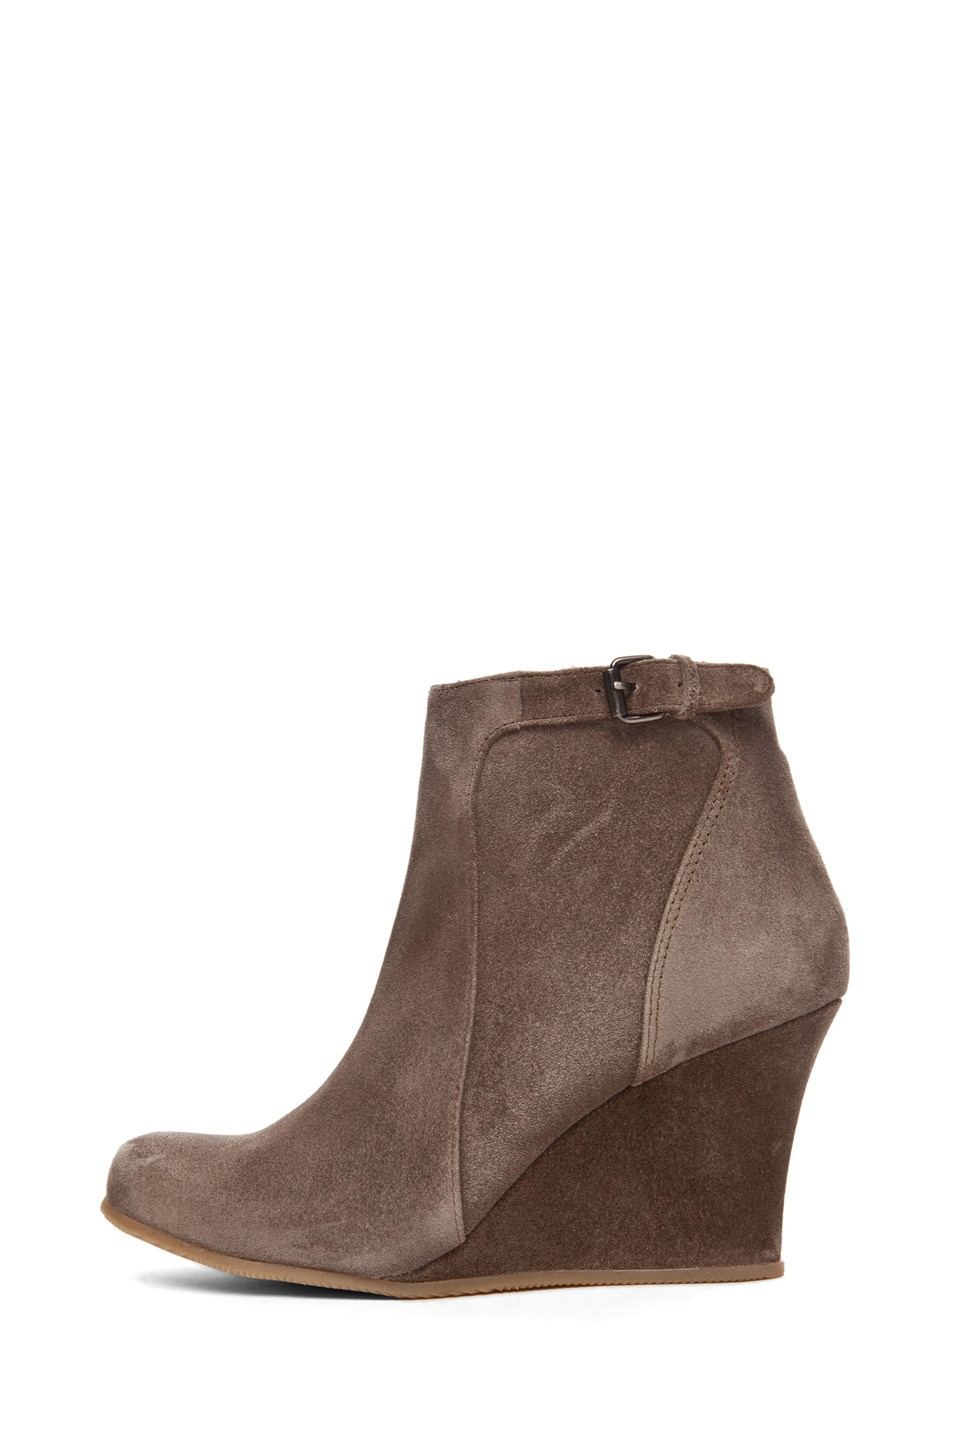 Image 1 of Lanvin Wedge Bootie in Taupe